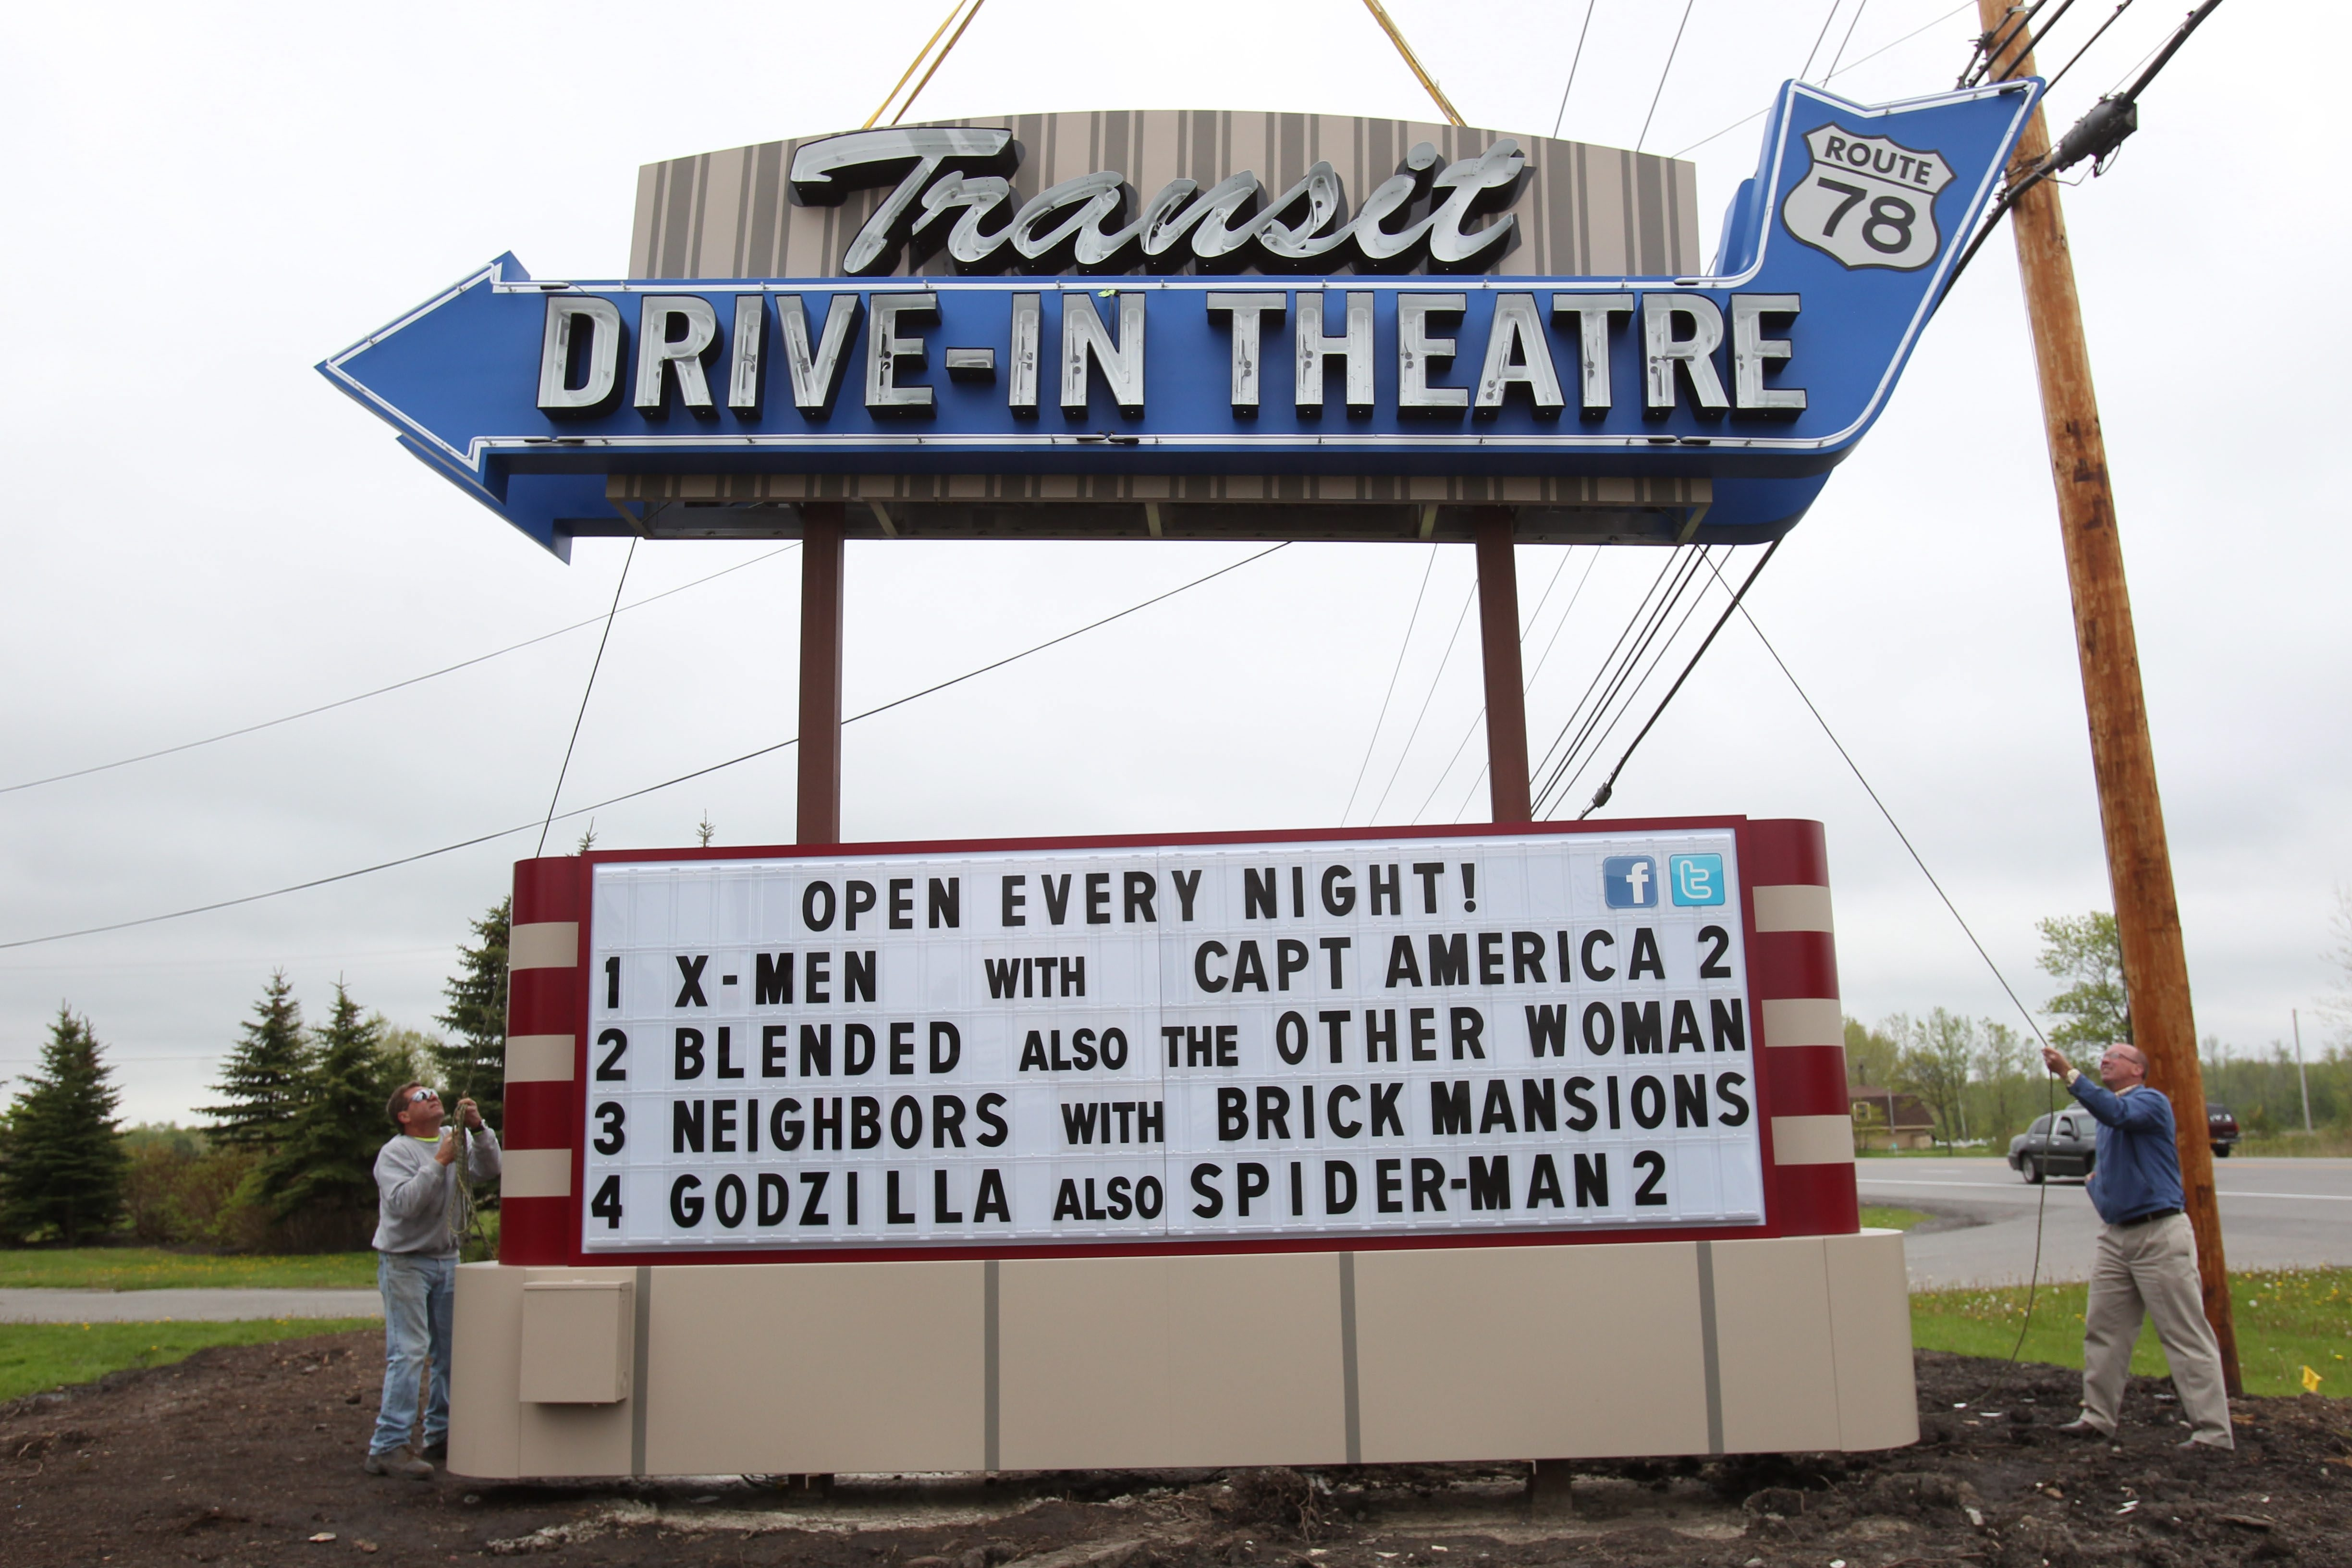 A new 1950s era marquee was installed Friday in front of the Transit Drive-In on Transit Road in Lockport. (Sharon Cantillon/Buffalo News)